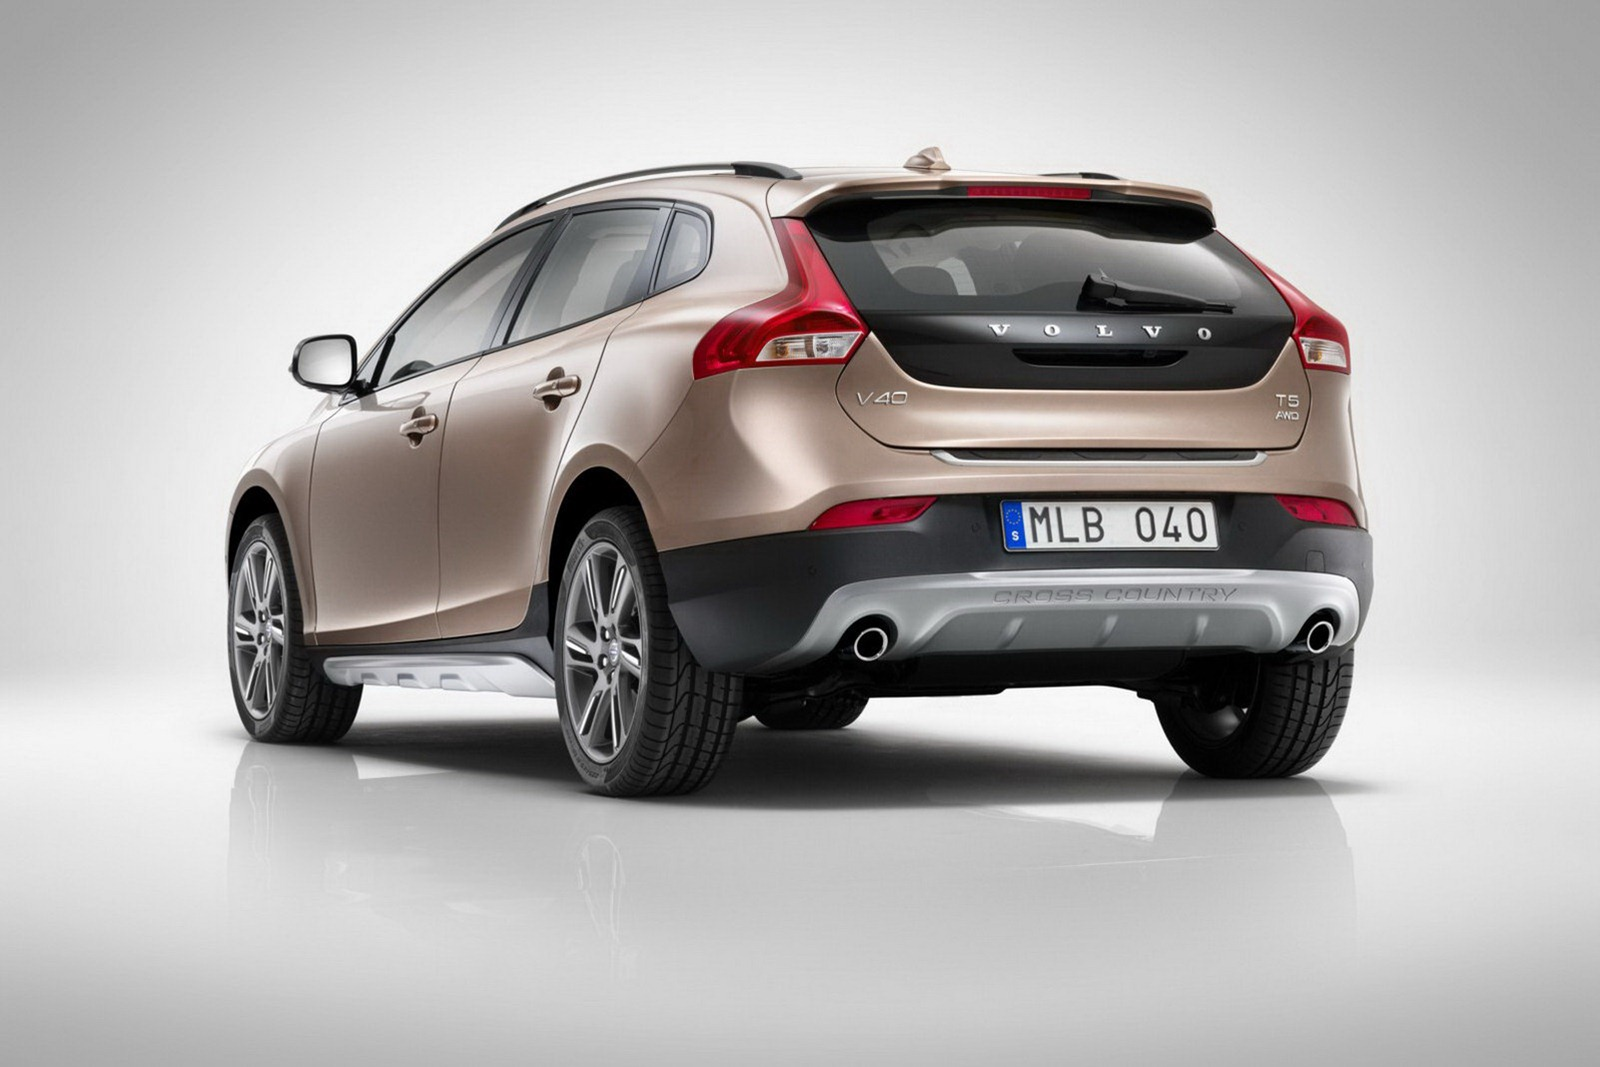 volvo v40 cross country 2 0 t4 180 hp. Black Bedroom Furniture Sets. Home Design Ideas